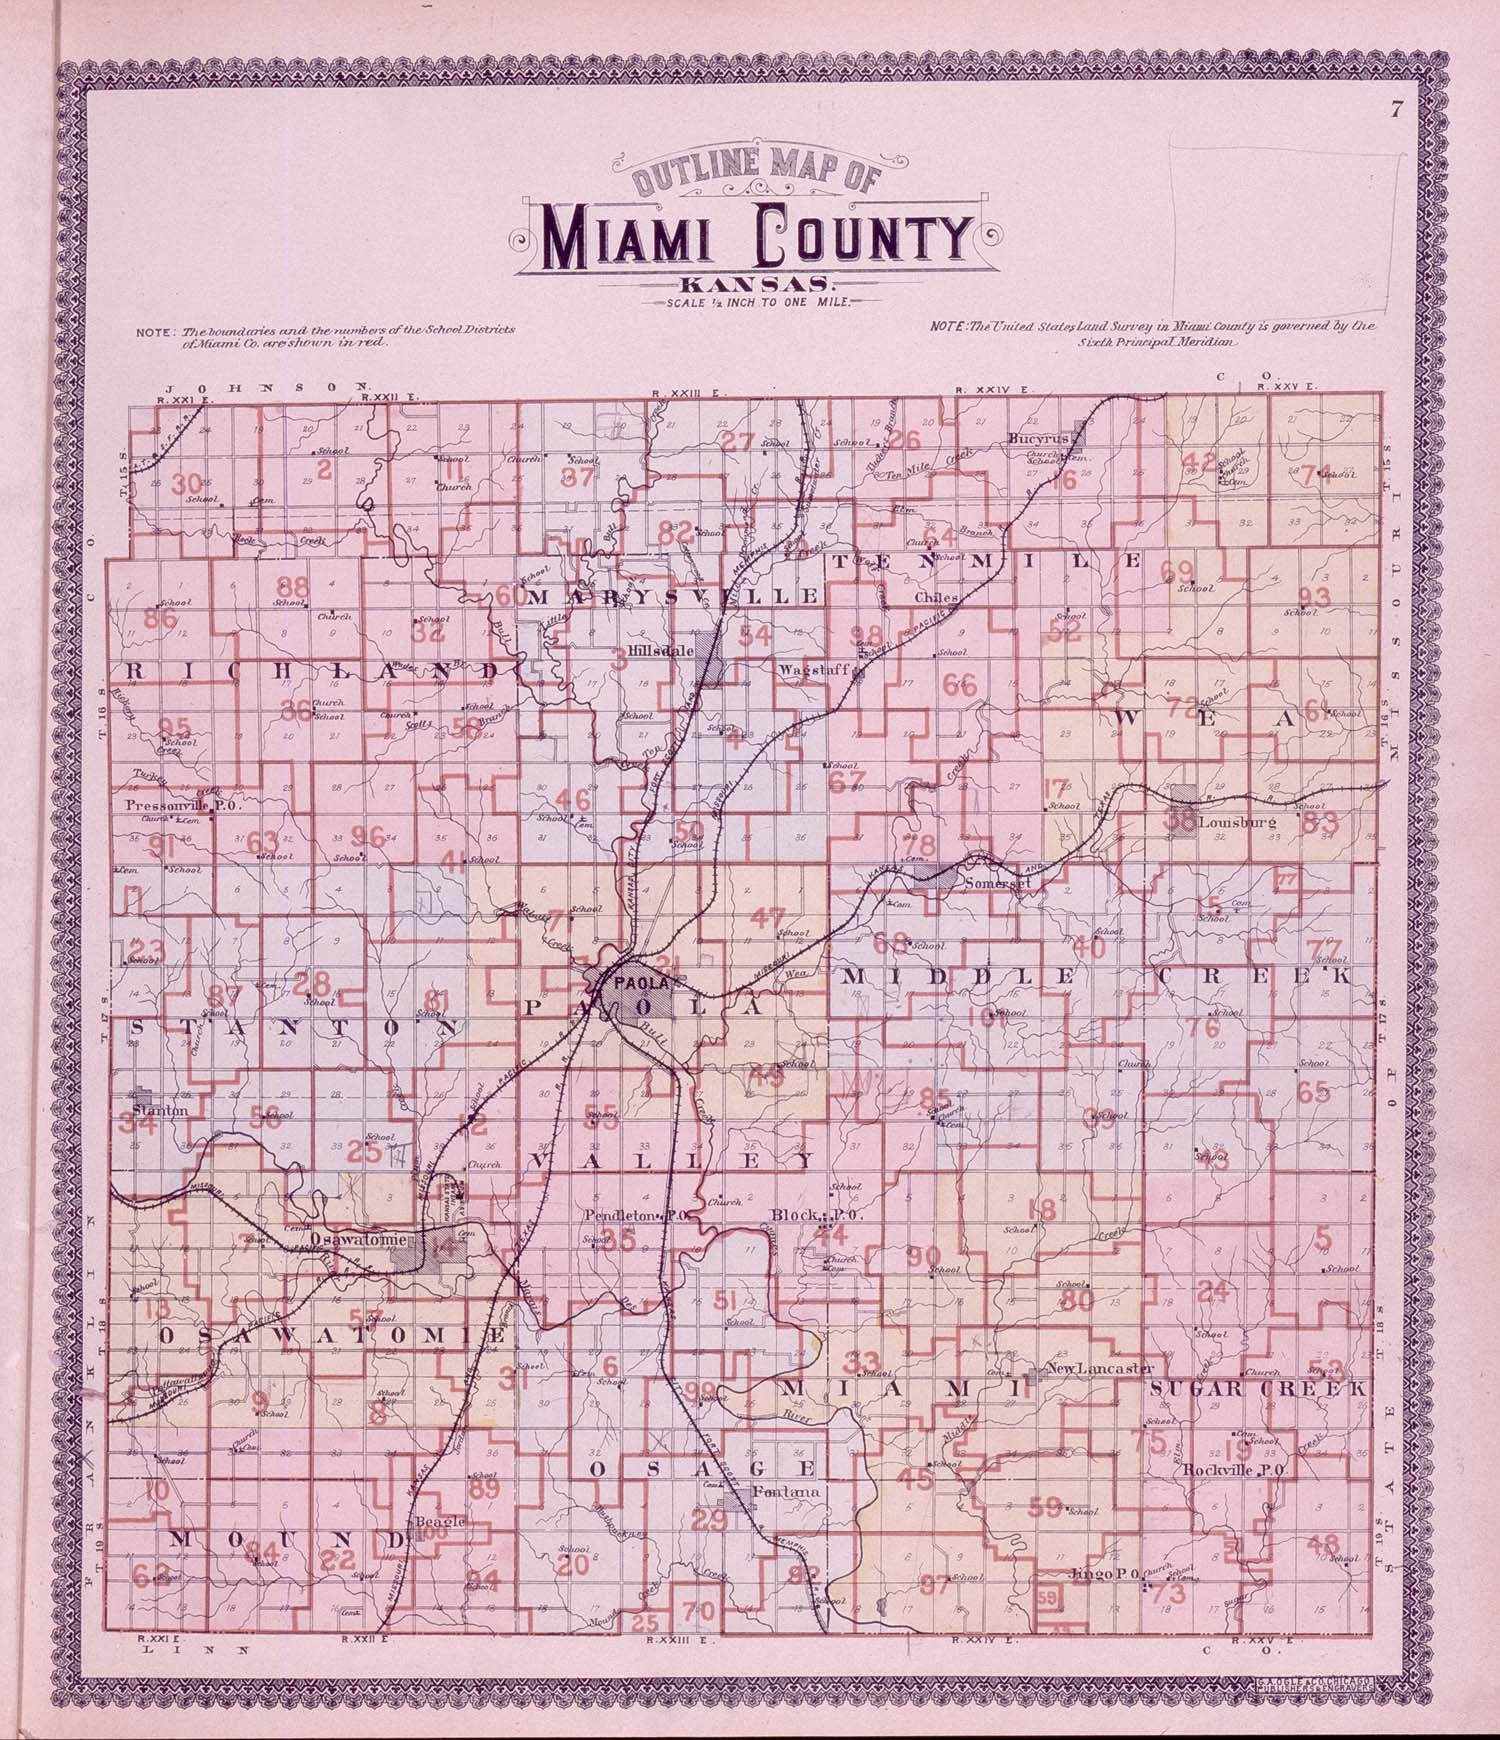 Standard atlas, Miami County, Kansas - 7